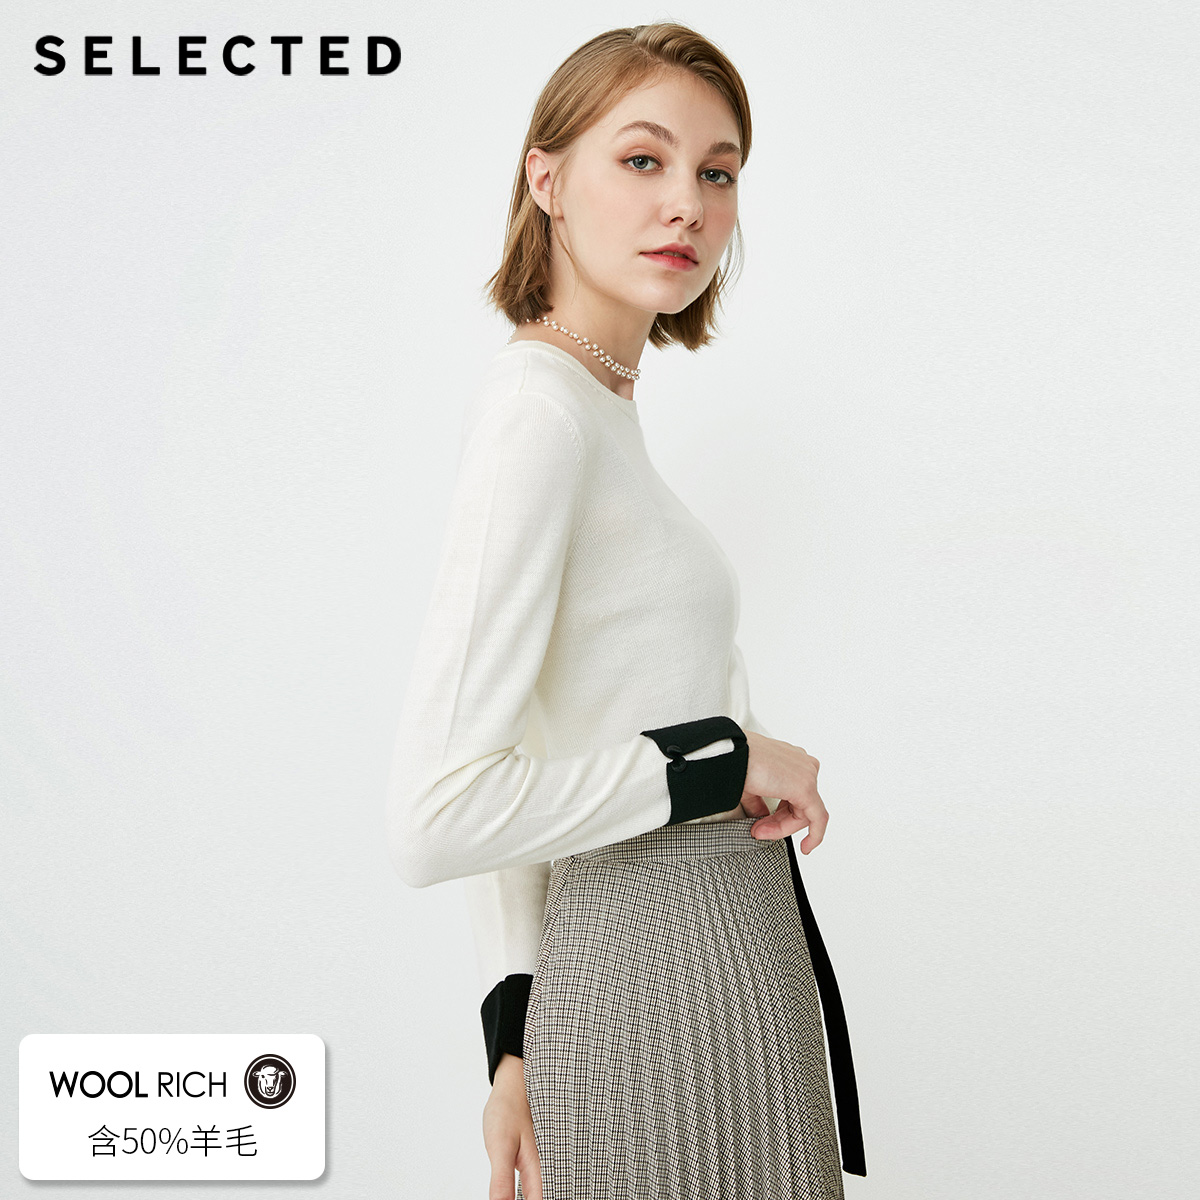 SELECTED Women s Wool blend Assorted Colors Knit Sweater S 418324522